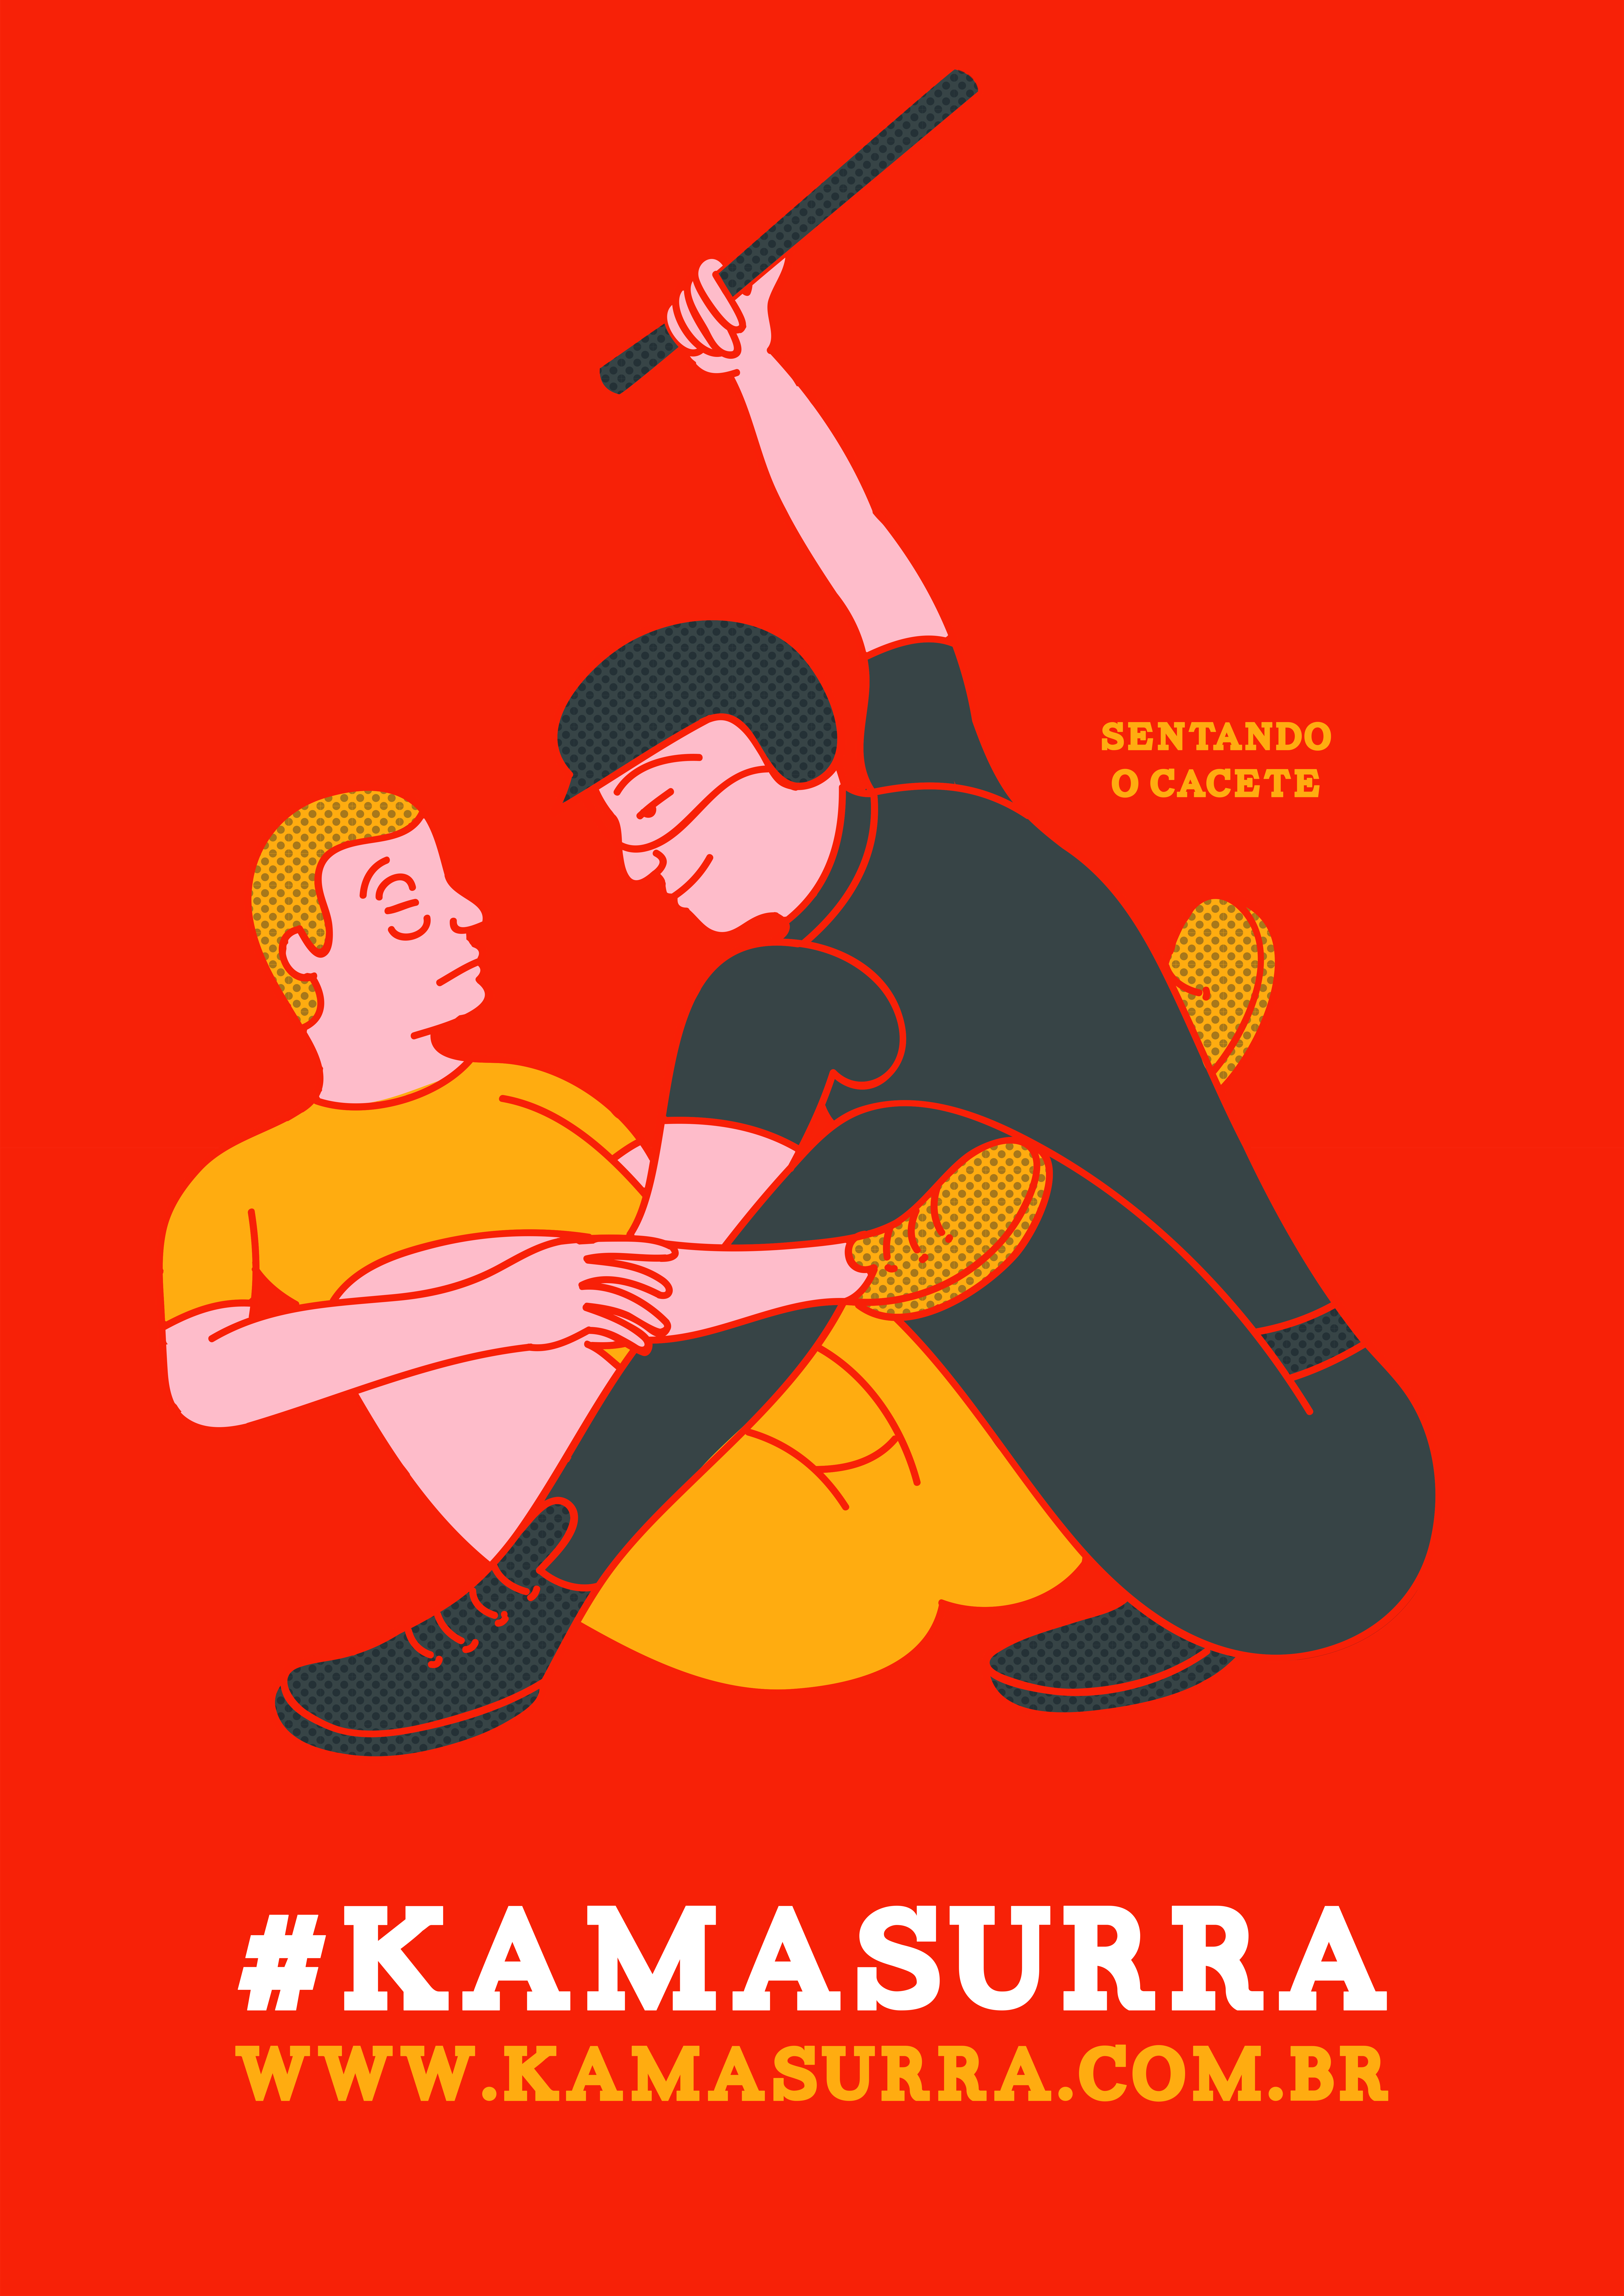 Kama Sutra-Inspired Posters Raise Awareness Of An Unlikely Topic ...